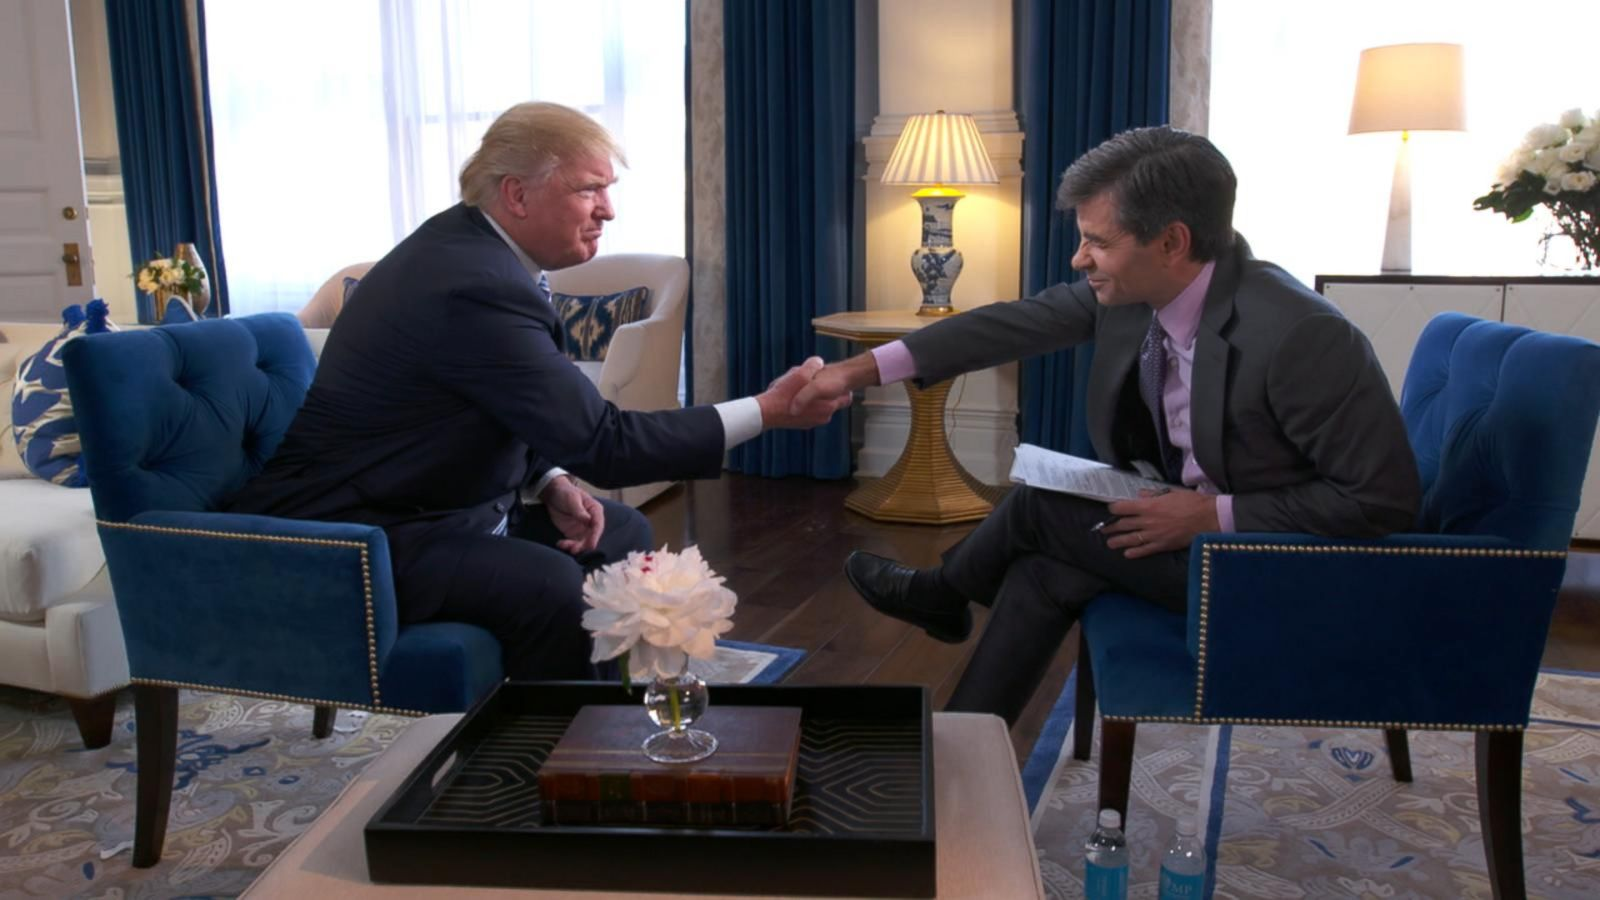 VIDEO: Full Interview: George Stephanopoulos goes one-on-one with Donald Trump